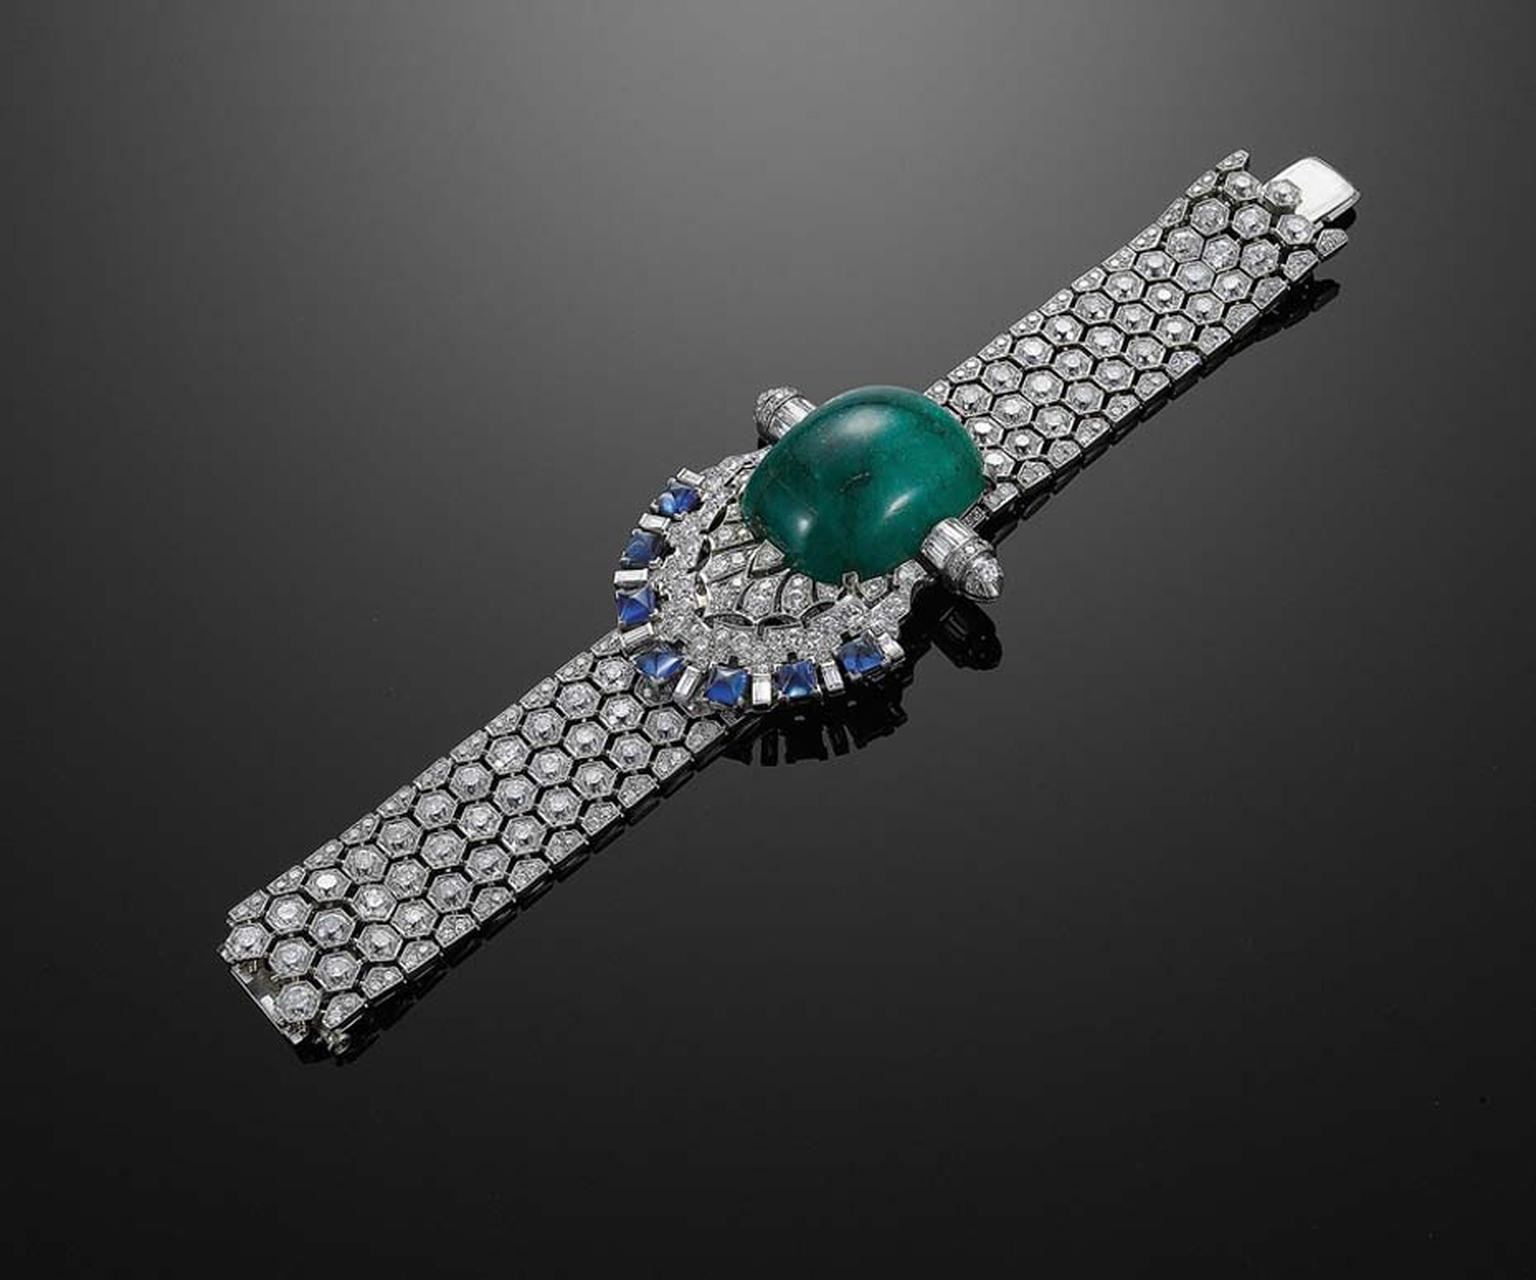 Actress Maggie Gyllenhall wore this impressive, 1950s style, old mine diamond honeycomb bracelet with converted components by Fred Leighton to the 2010 Oscars. Set with a cabochon emerald, sugarloaf sapphires and diamonds, it oozes vintage Hollywood glamo